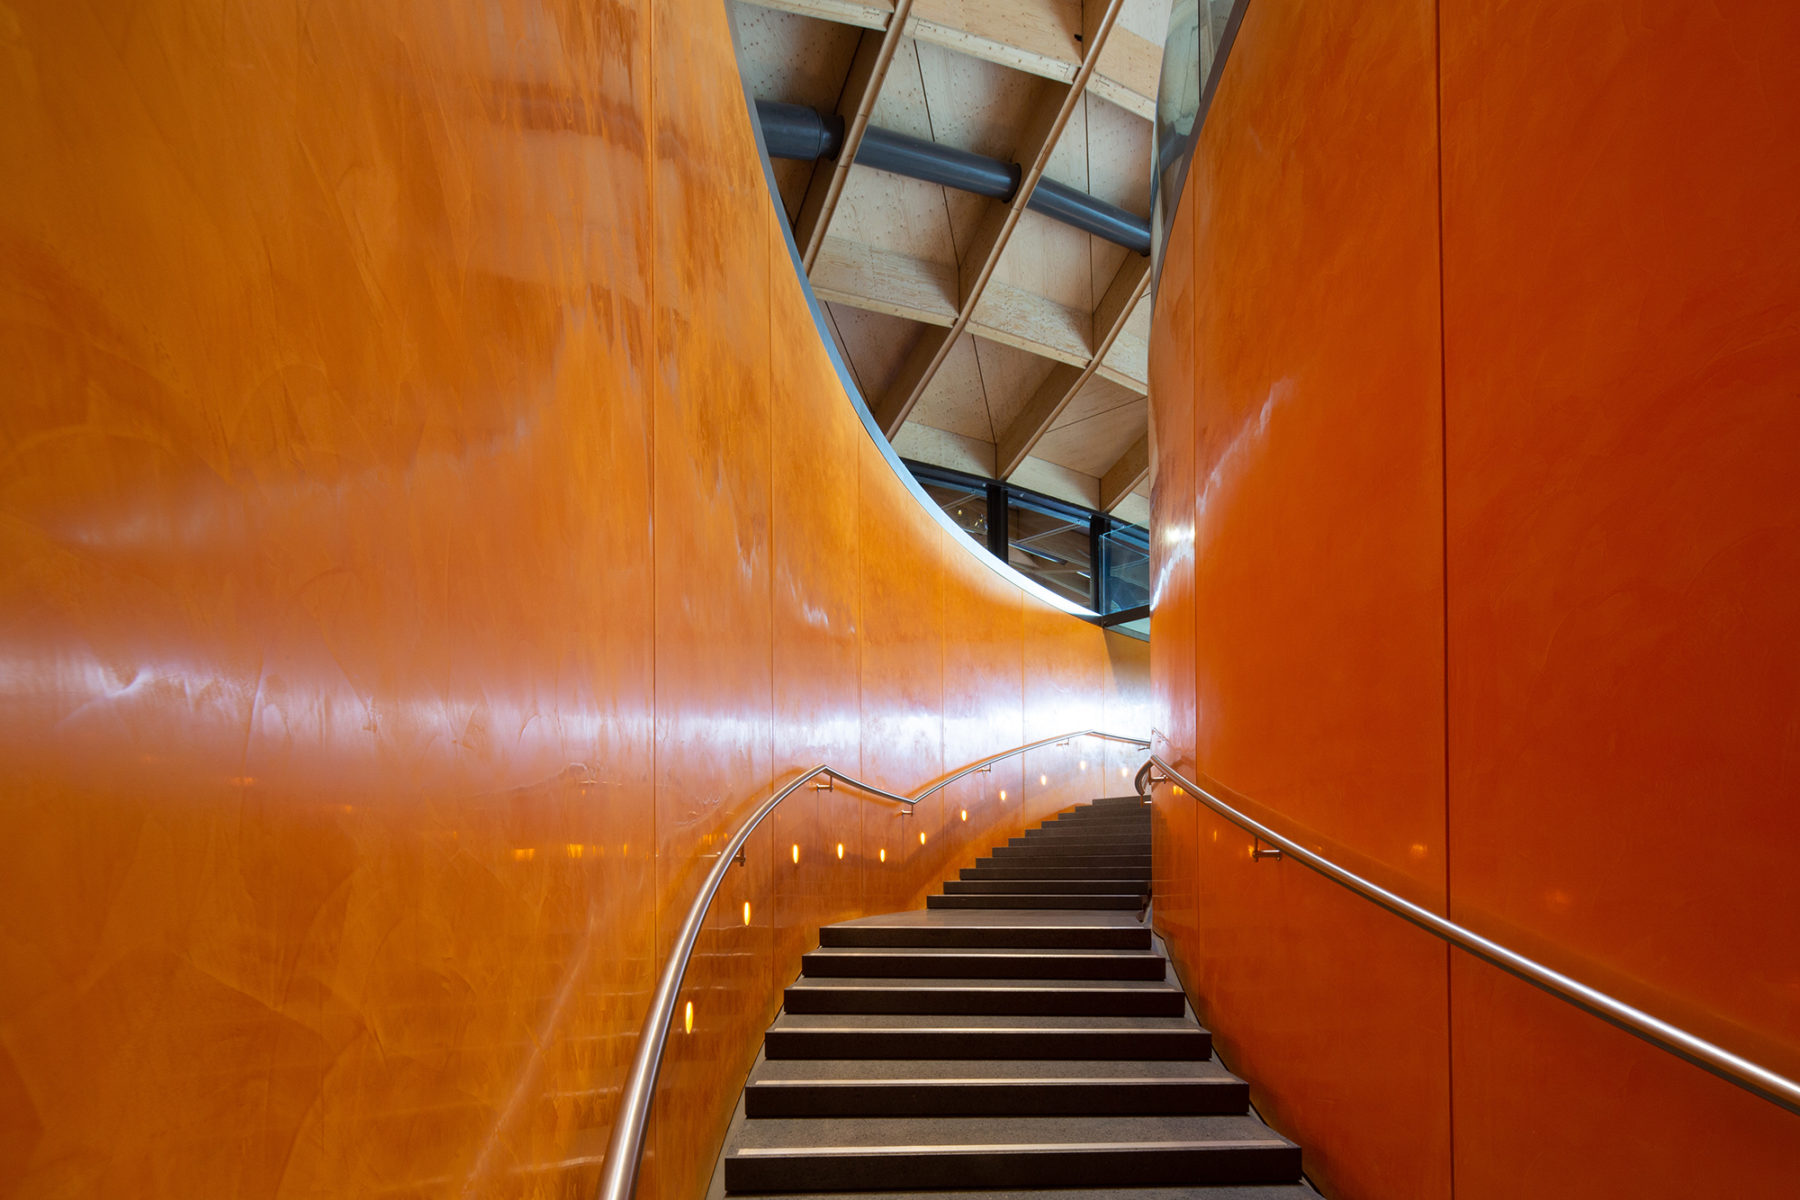 Stairway, the Macallan distillery | by McAteer Photograph